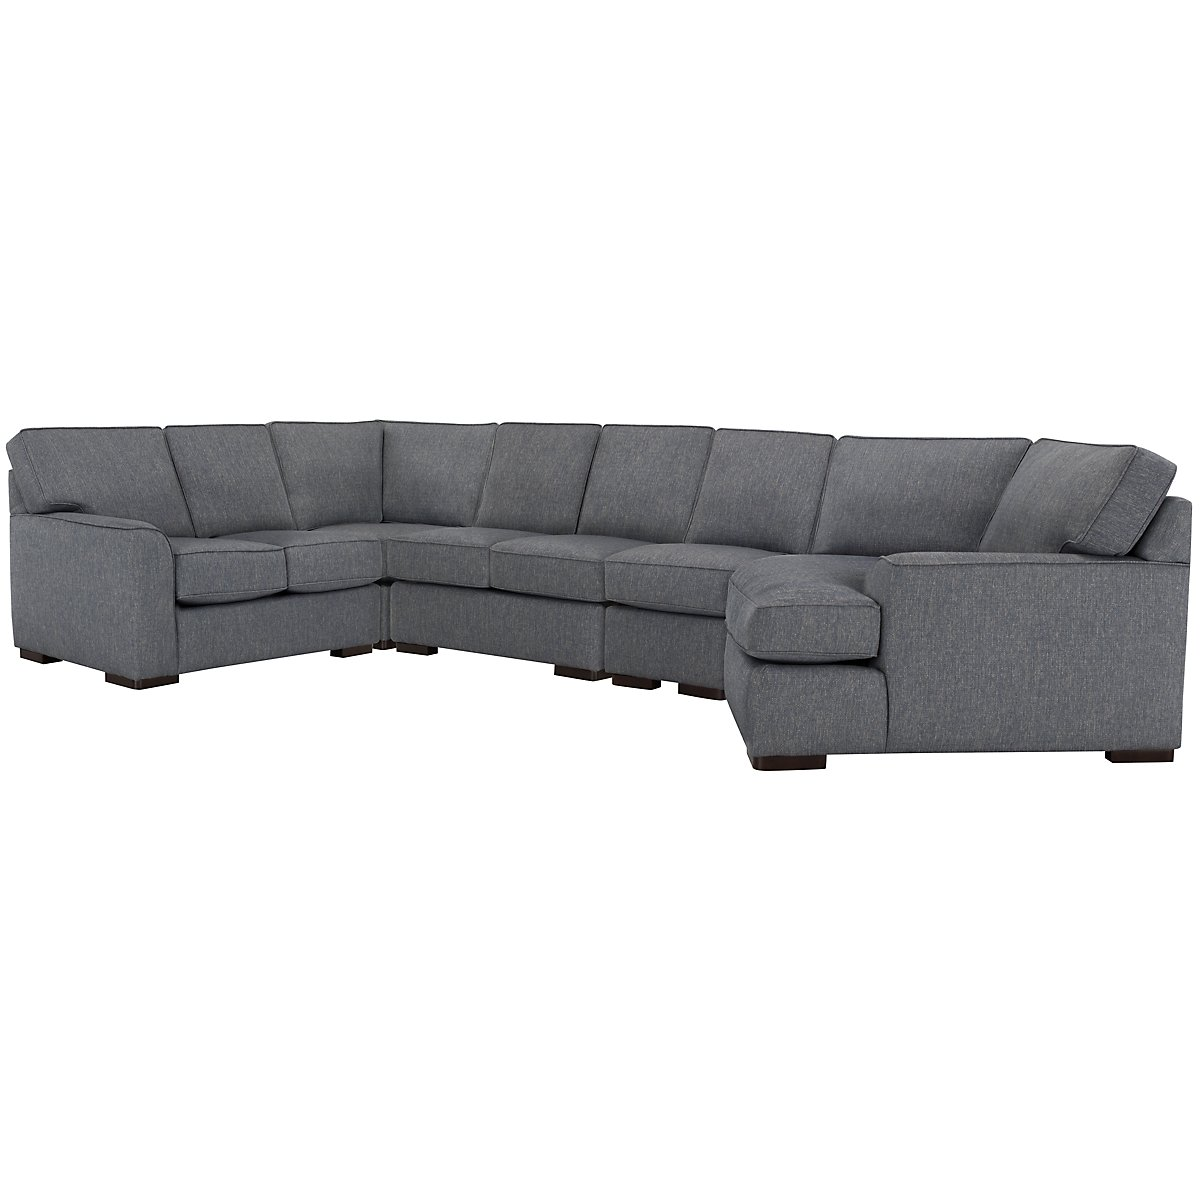 Austin Blue Fabric Large Right Cuddler Sectional